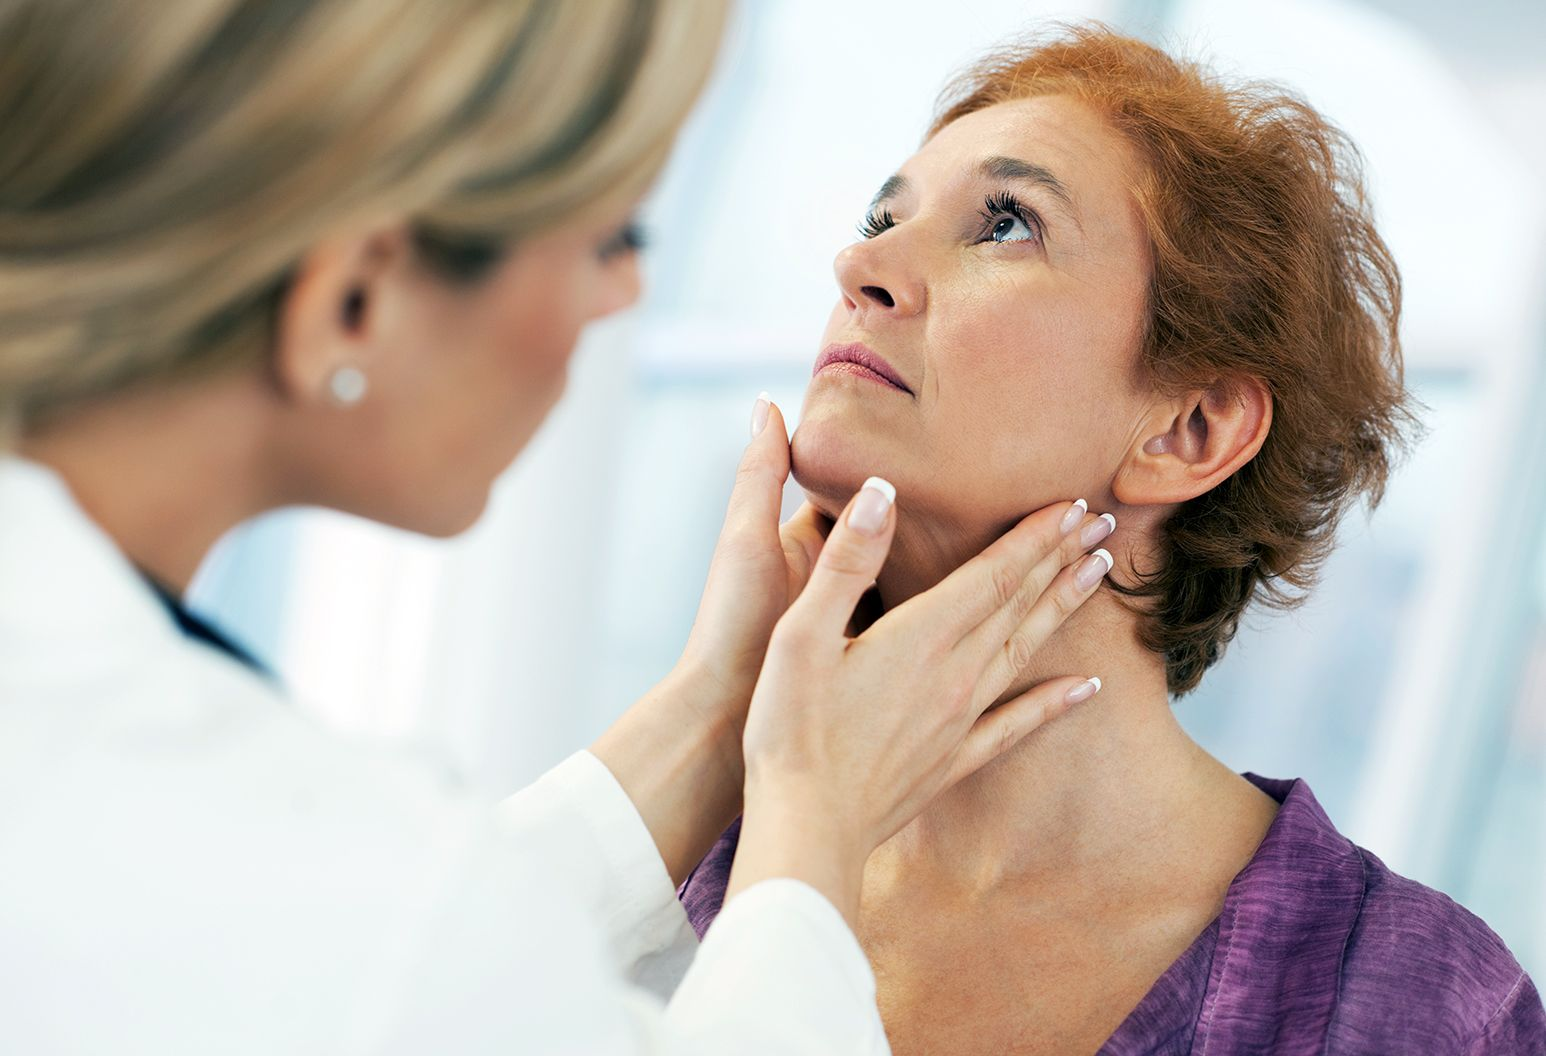 The sometimes confusing signs of a thyroid disorder